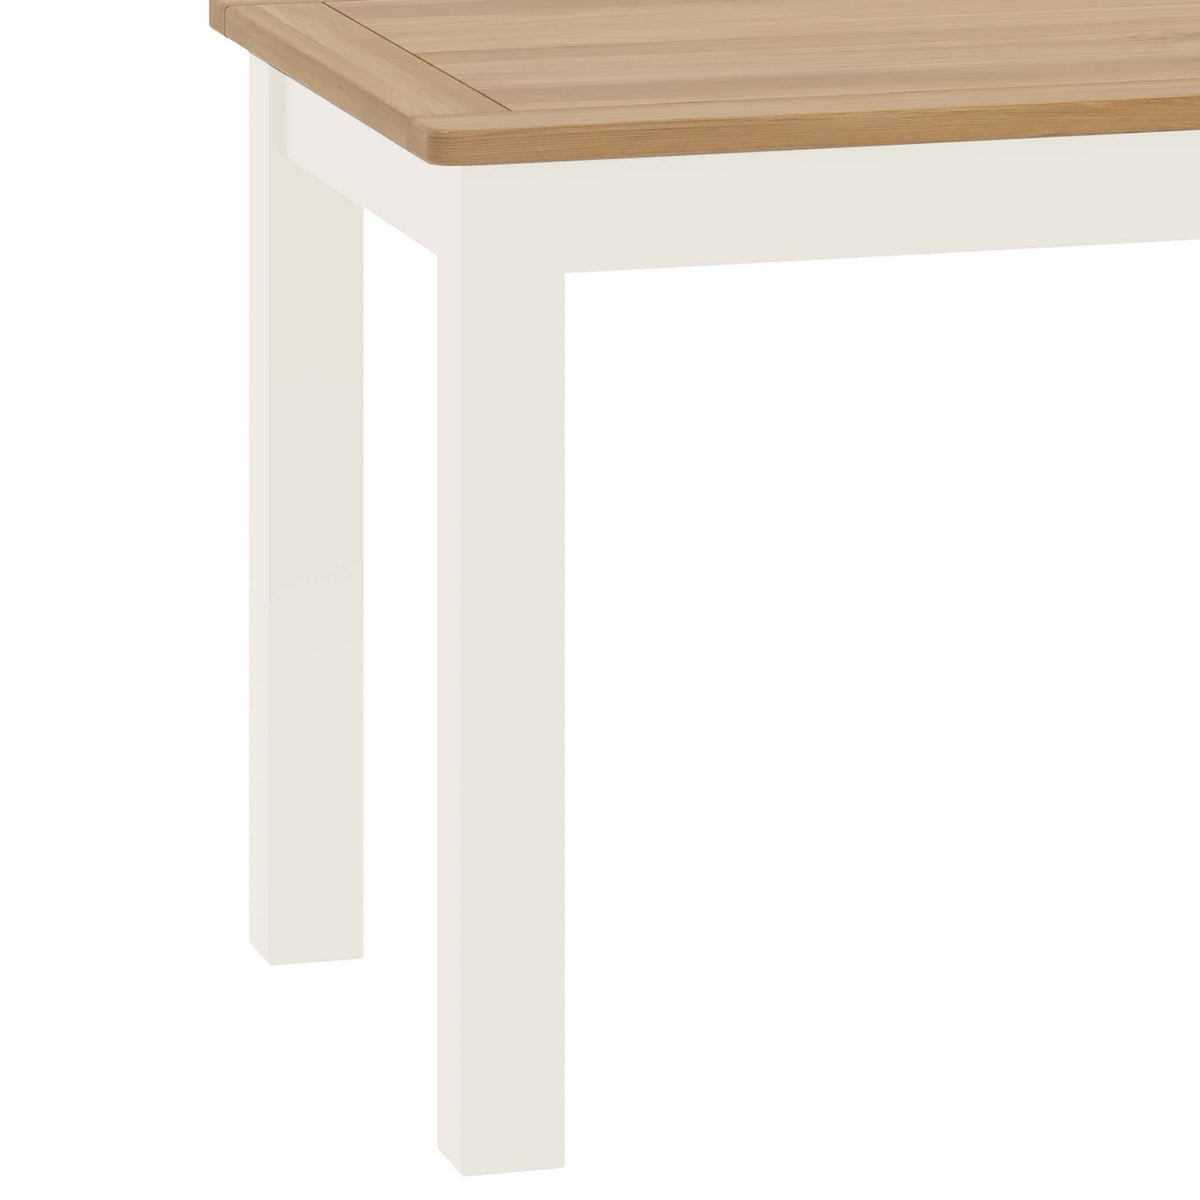 The Padstow White Wooden Dining Table - Close Up of Table Legs